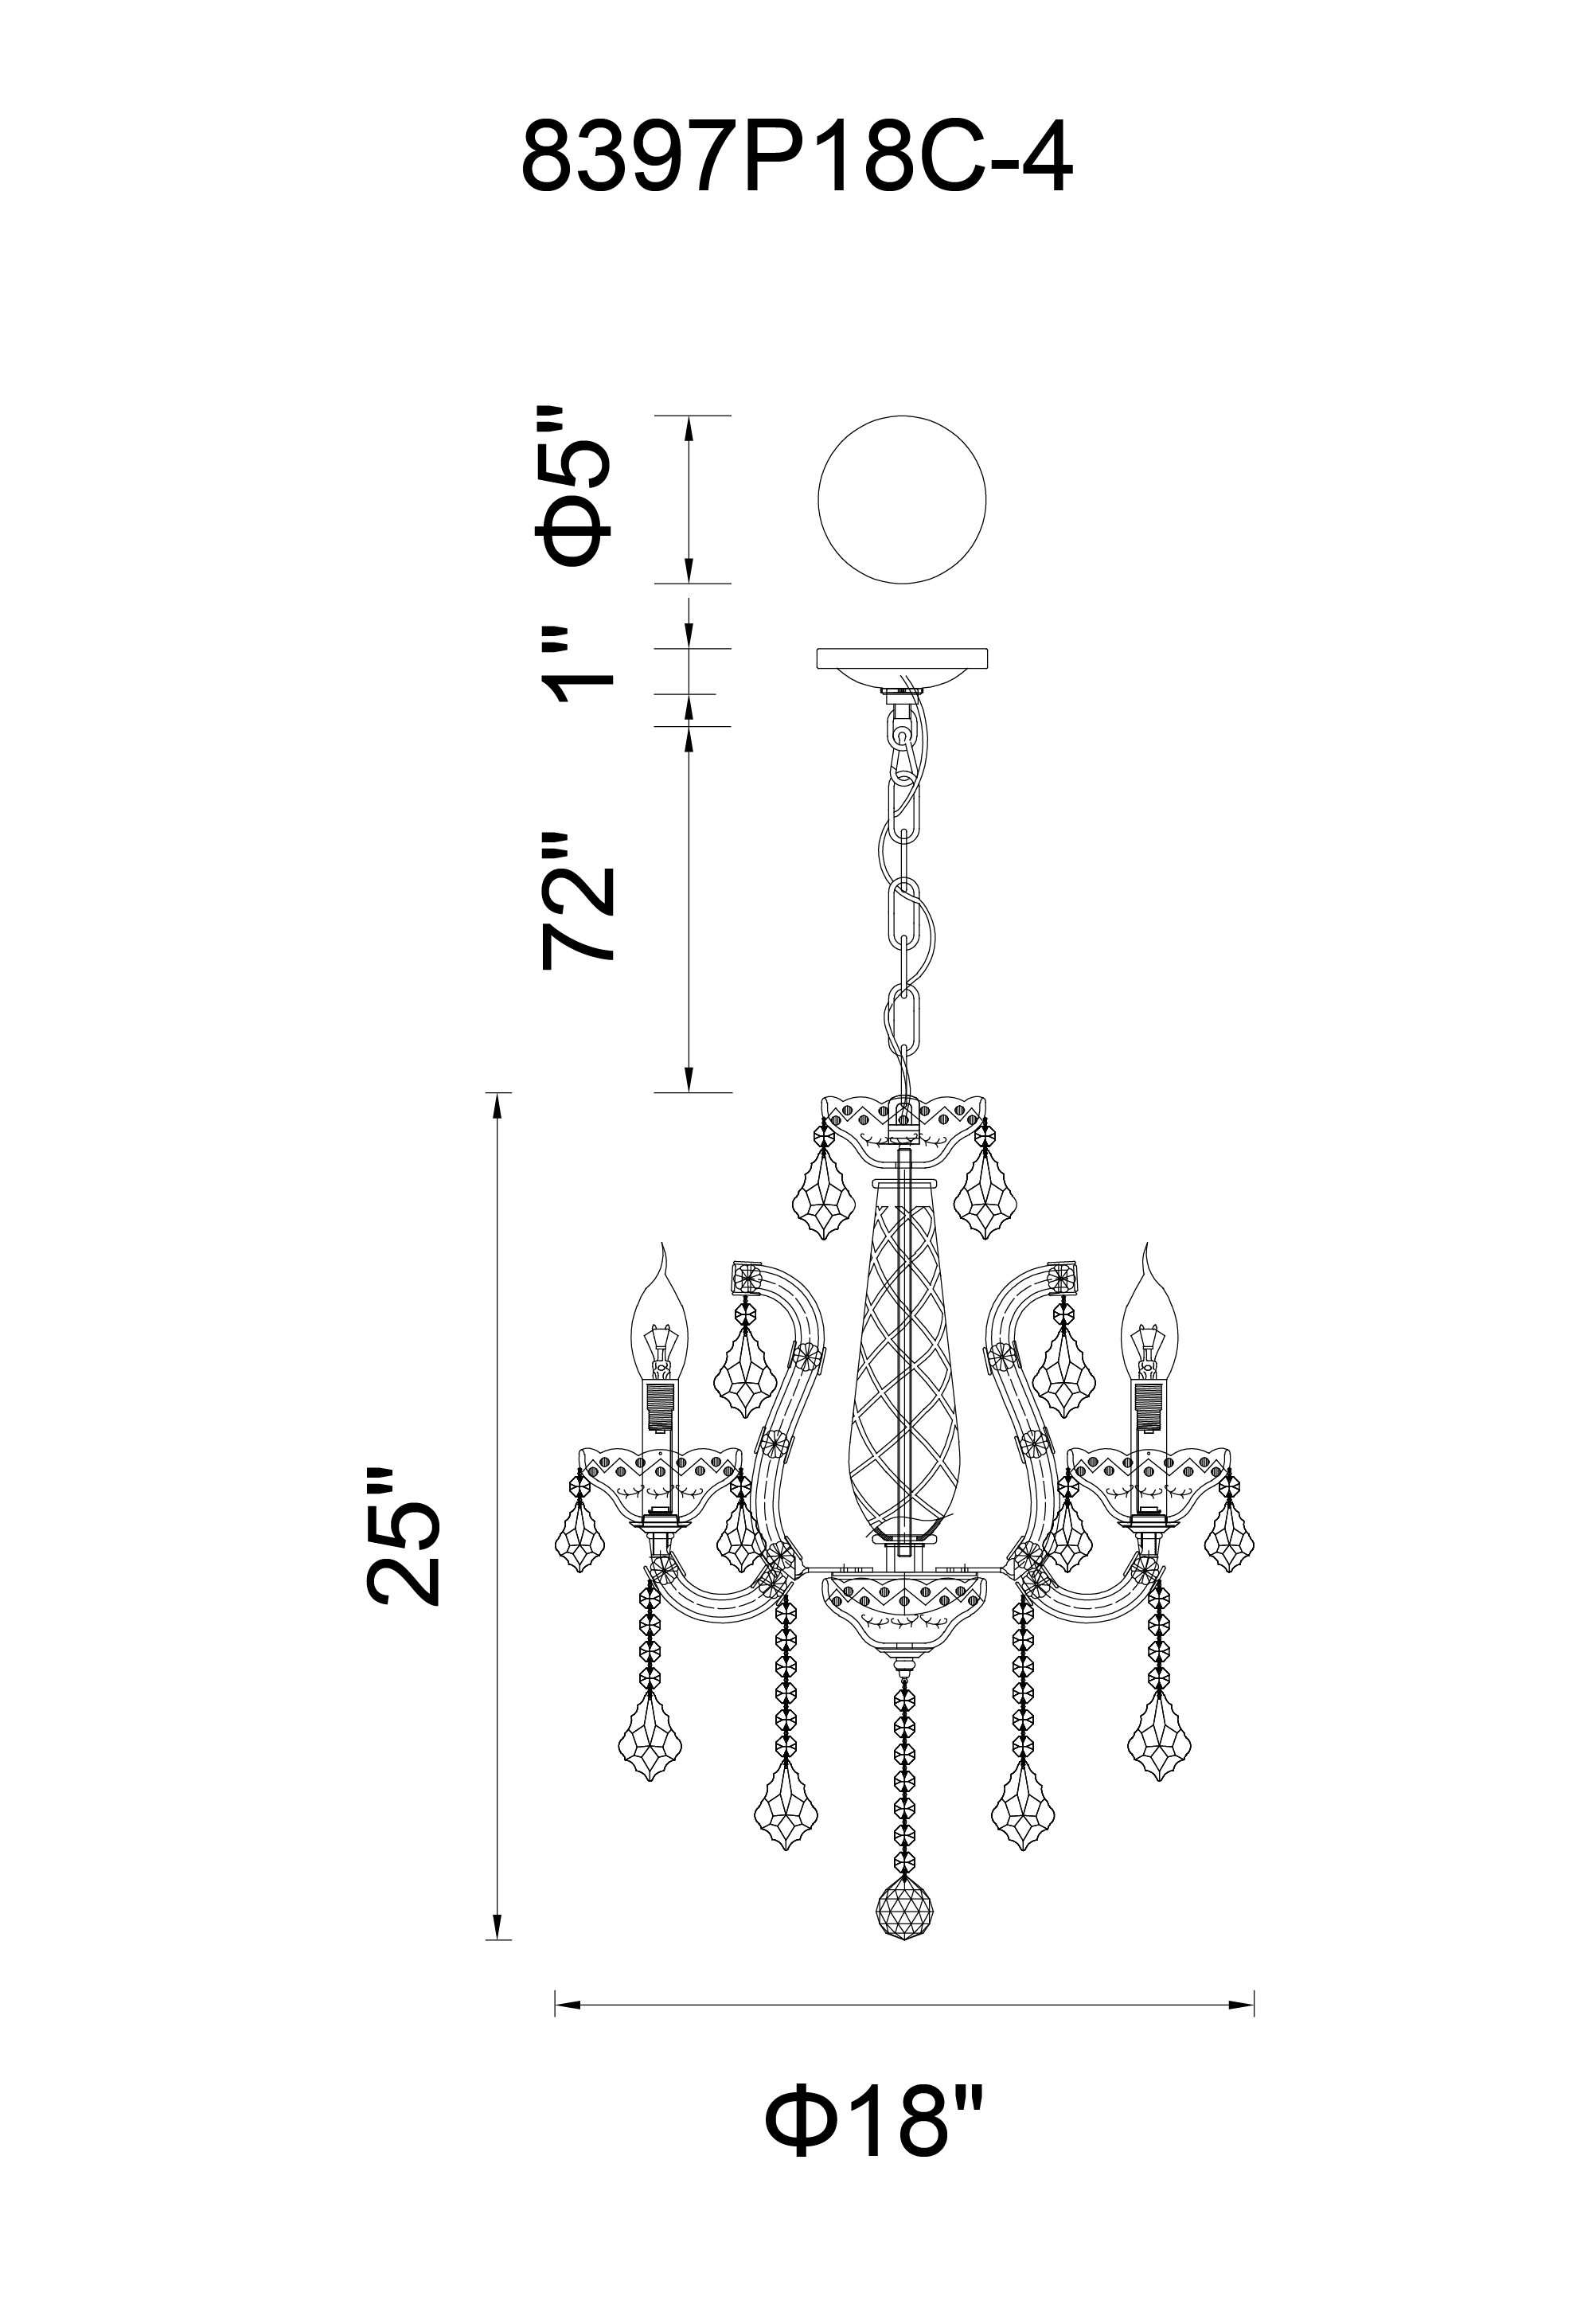 CWI Lighting Maria Theresa 4 Light Up Chandelier With Chrome Finish Model: 8397P18C-4(CLEAR) Line Drawing